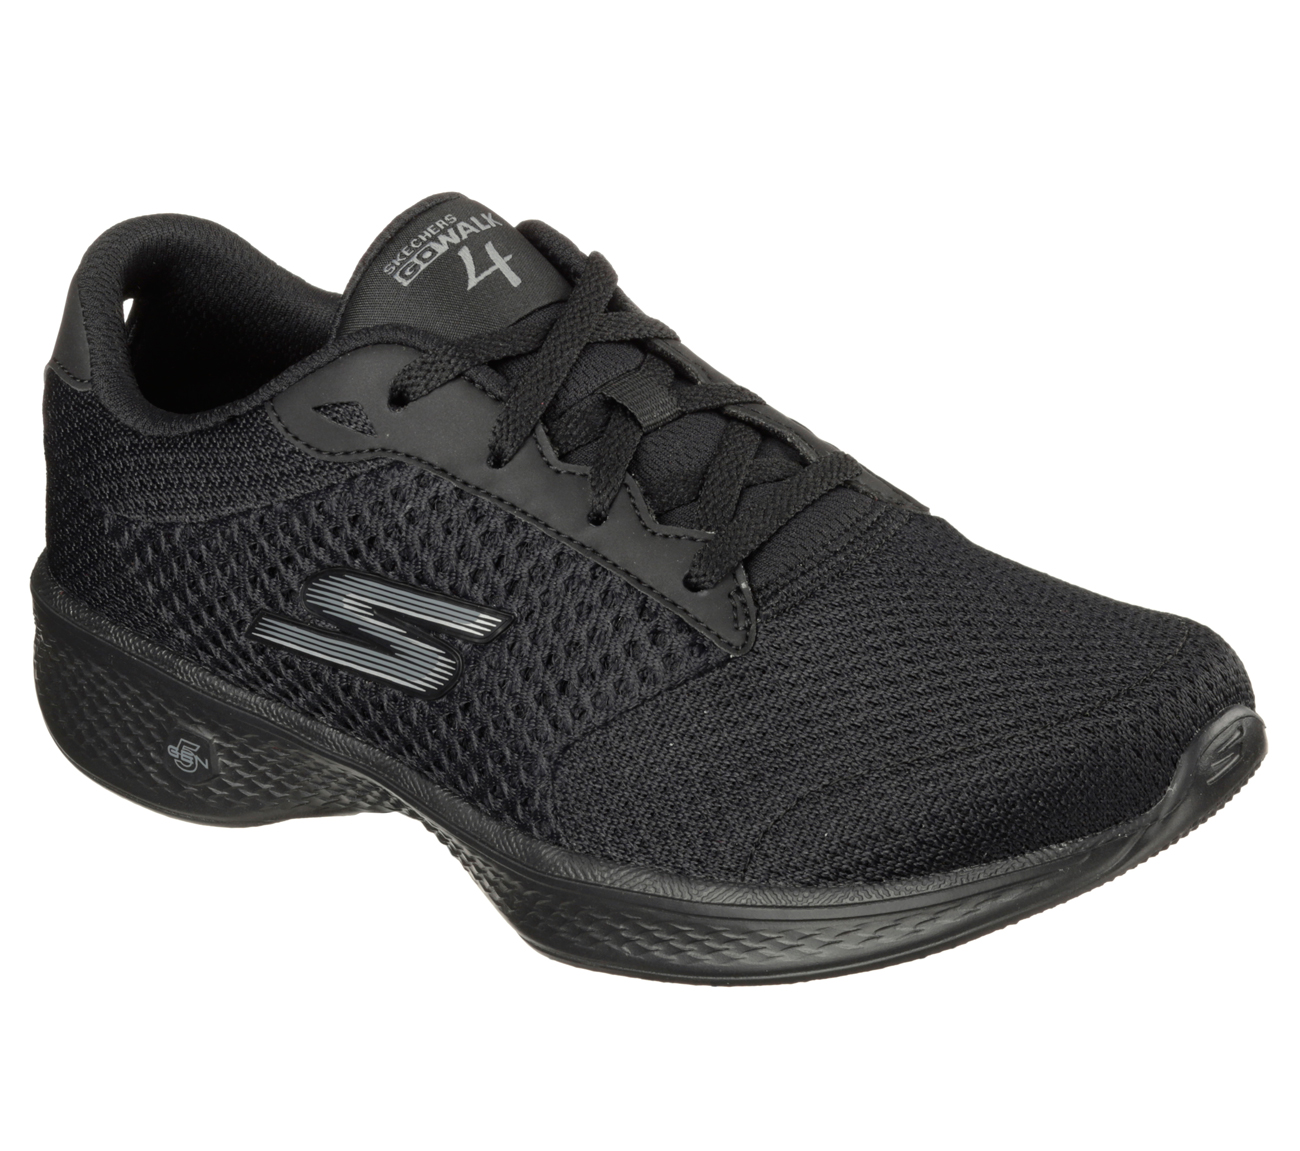 Skechers Black Shoes